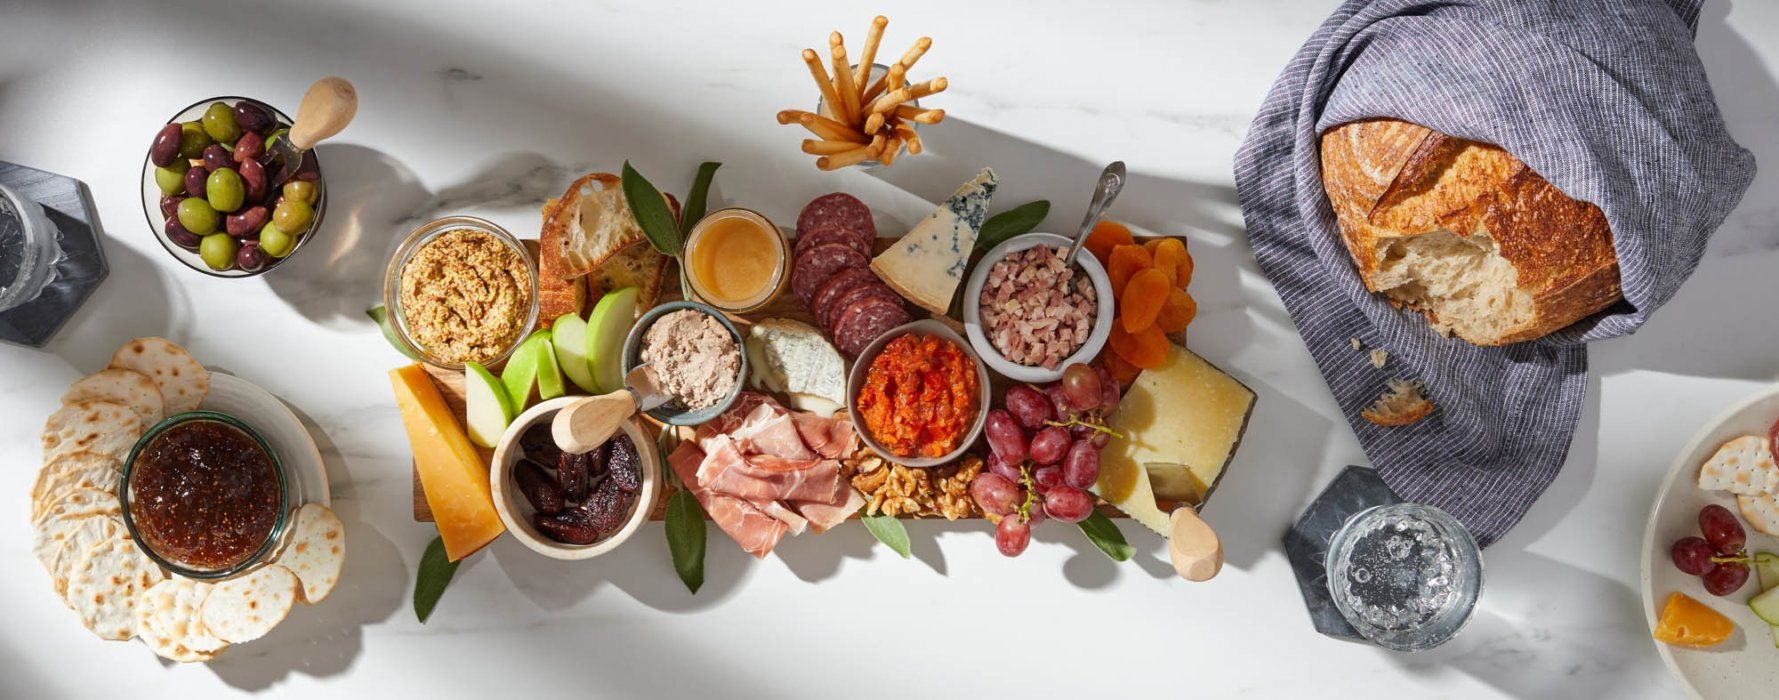 A filled charcuterie board - food styling